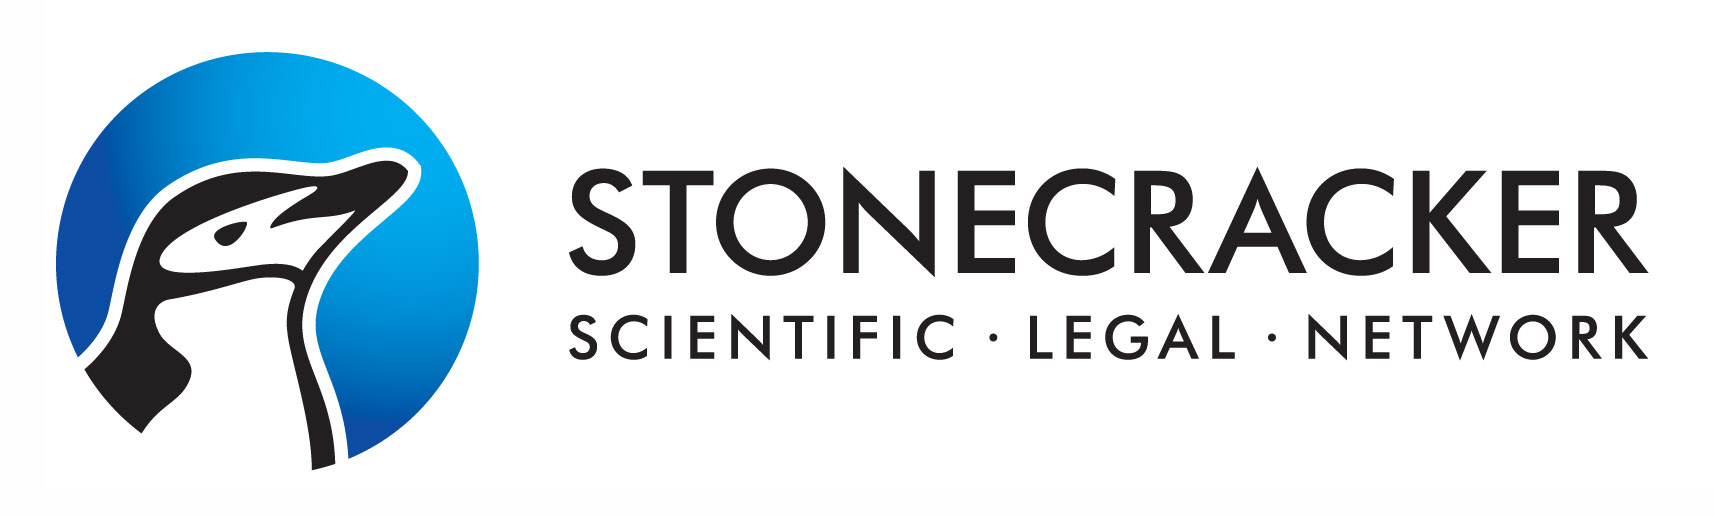 Stonecracker Scientific Law LLP